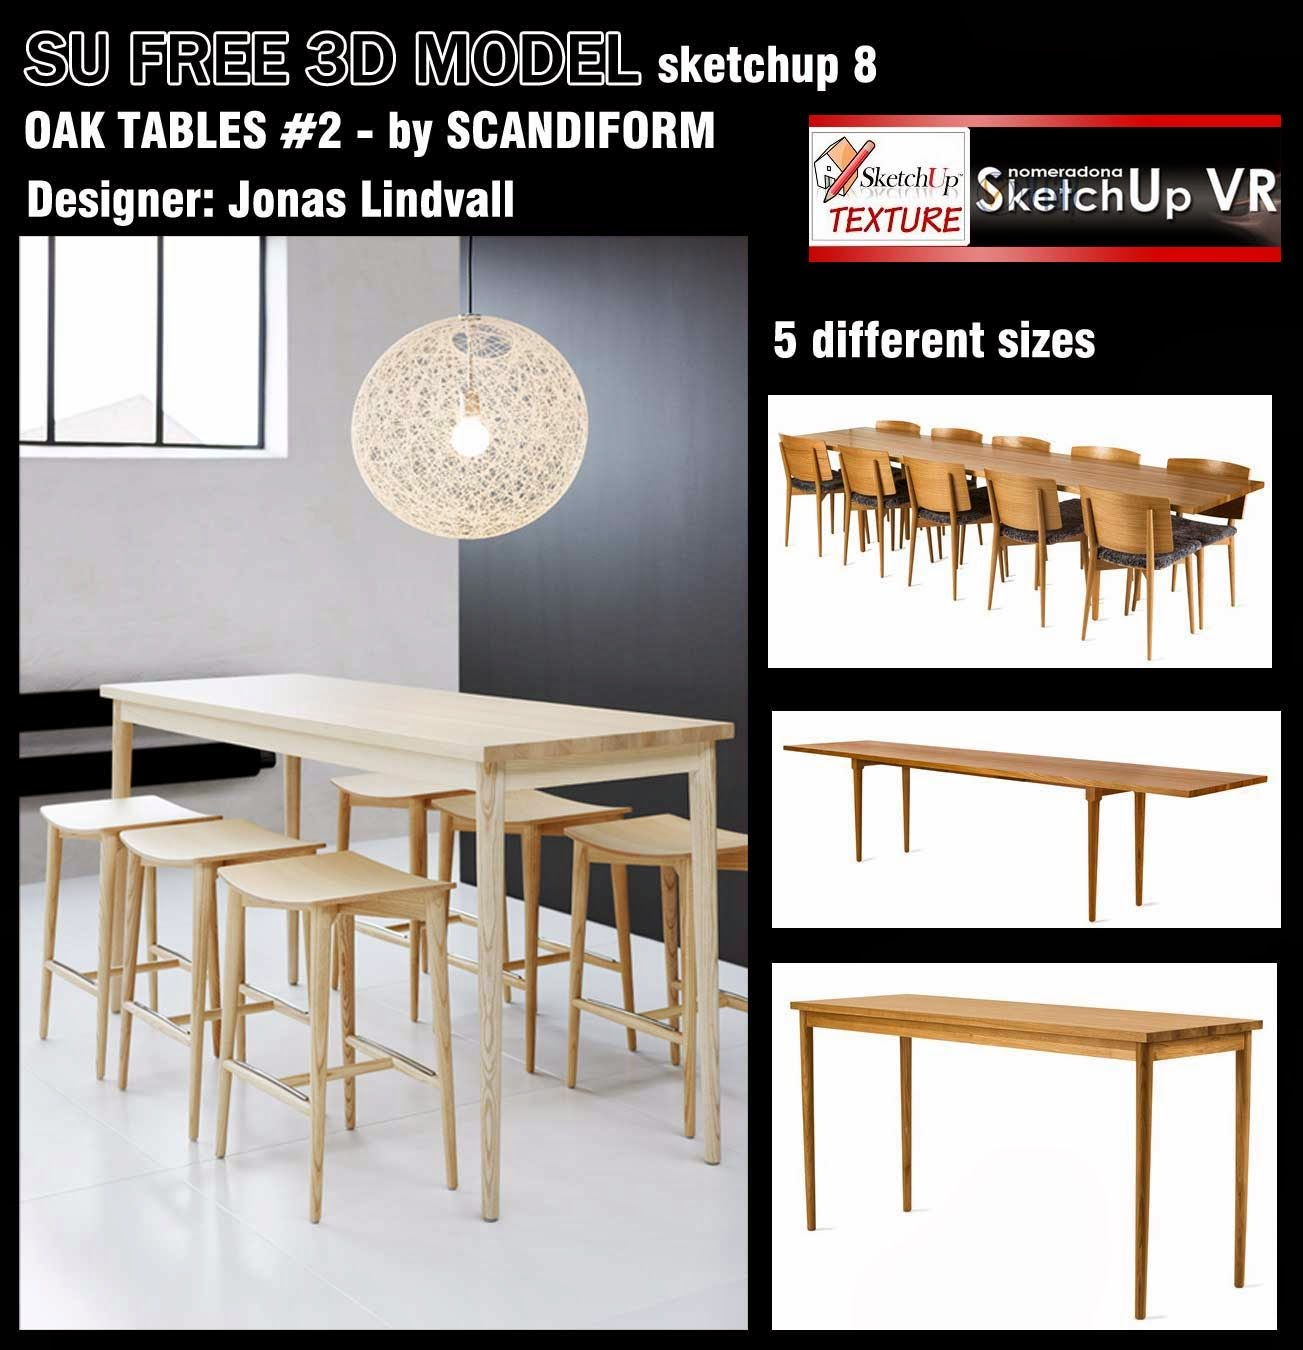 Free sketchup 3d model oak tables design 2 vray for Table design sketchup